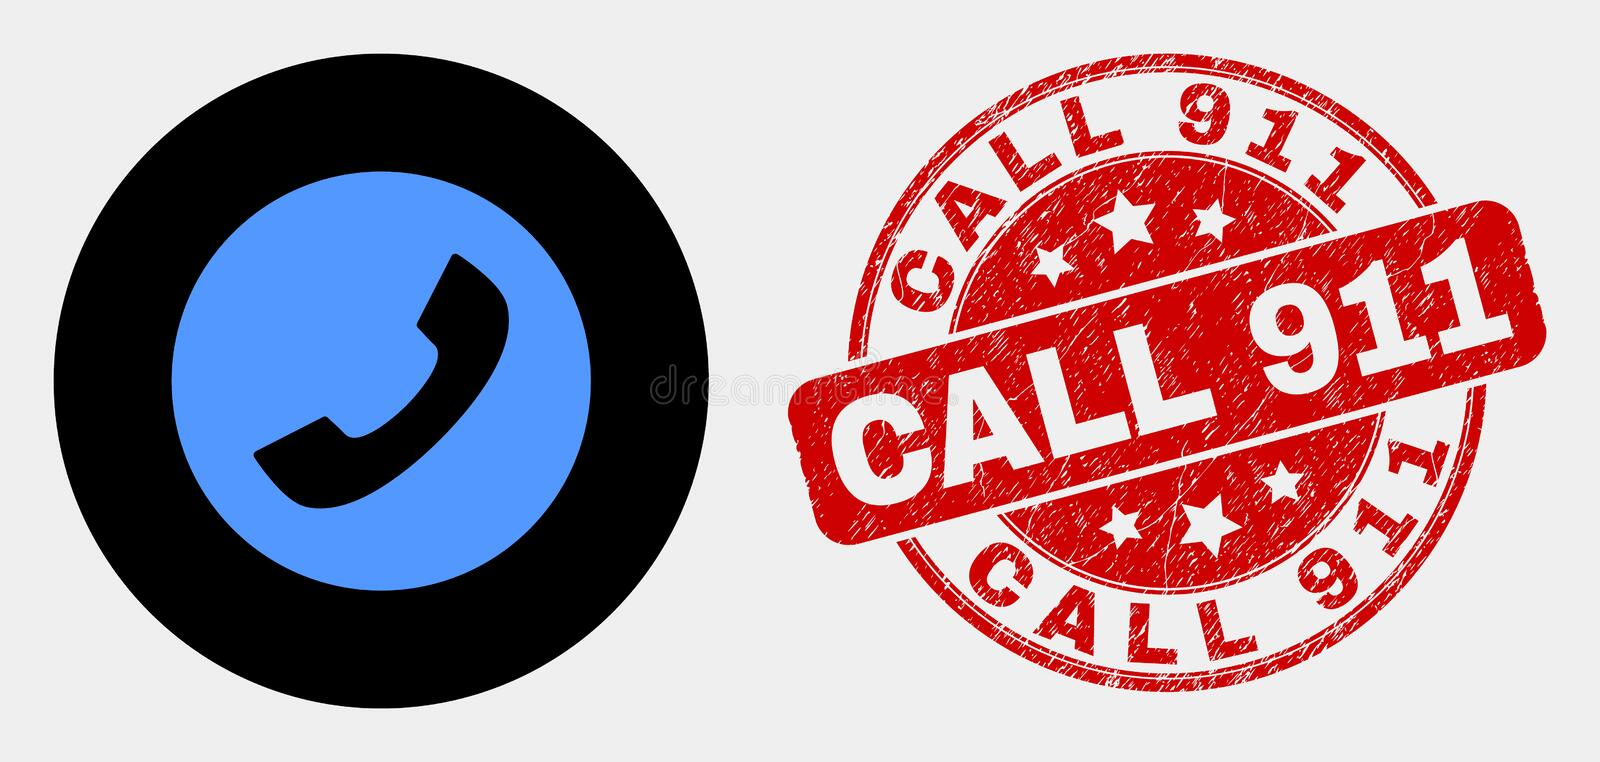 Vector Phone Call Icon and Grunge Call 911 Stamp Seal royalty free illustration